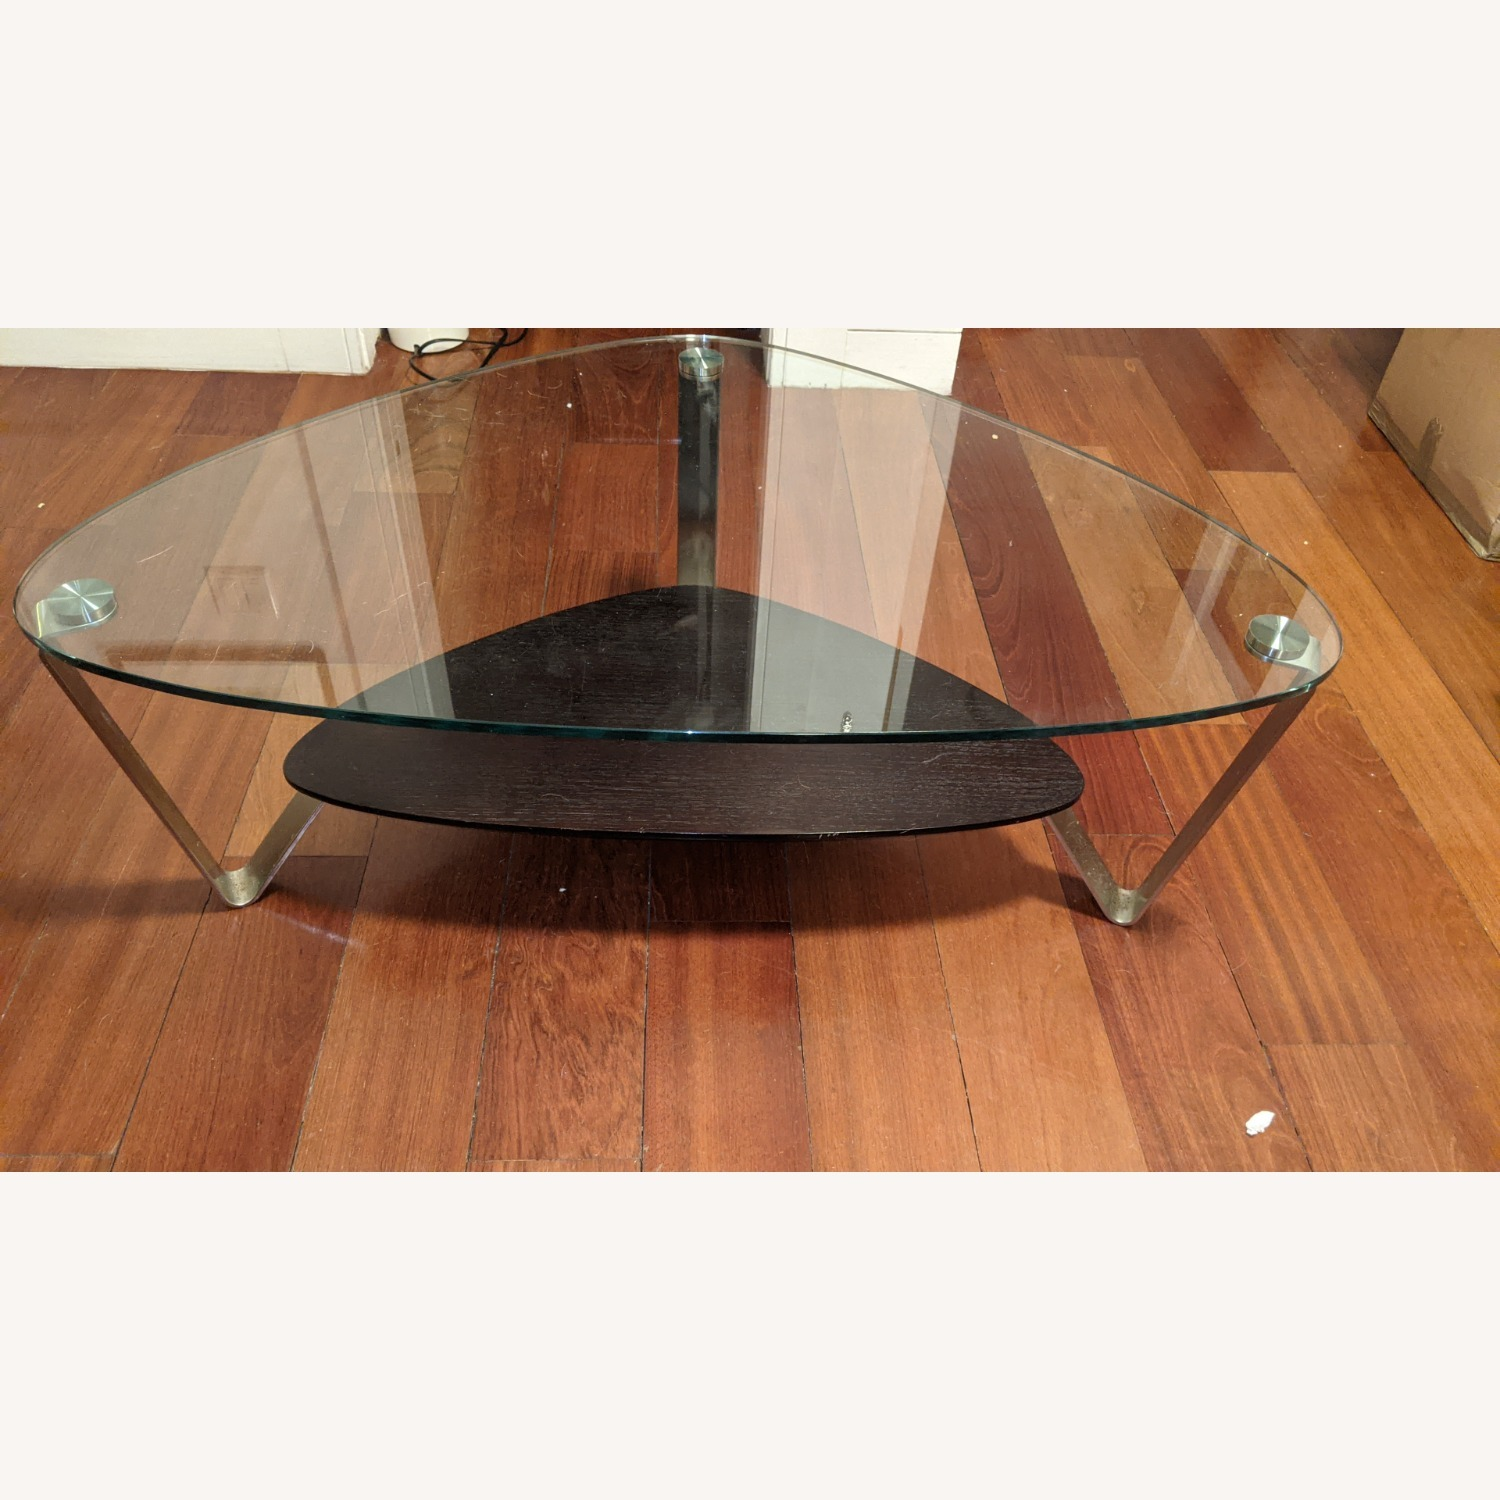 Modern Small Glass and Steel Coffee Table - image-2